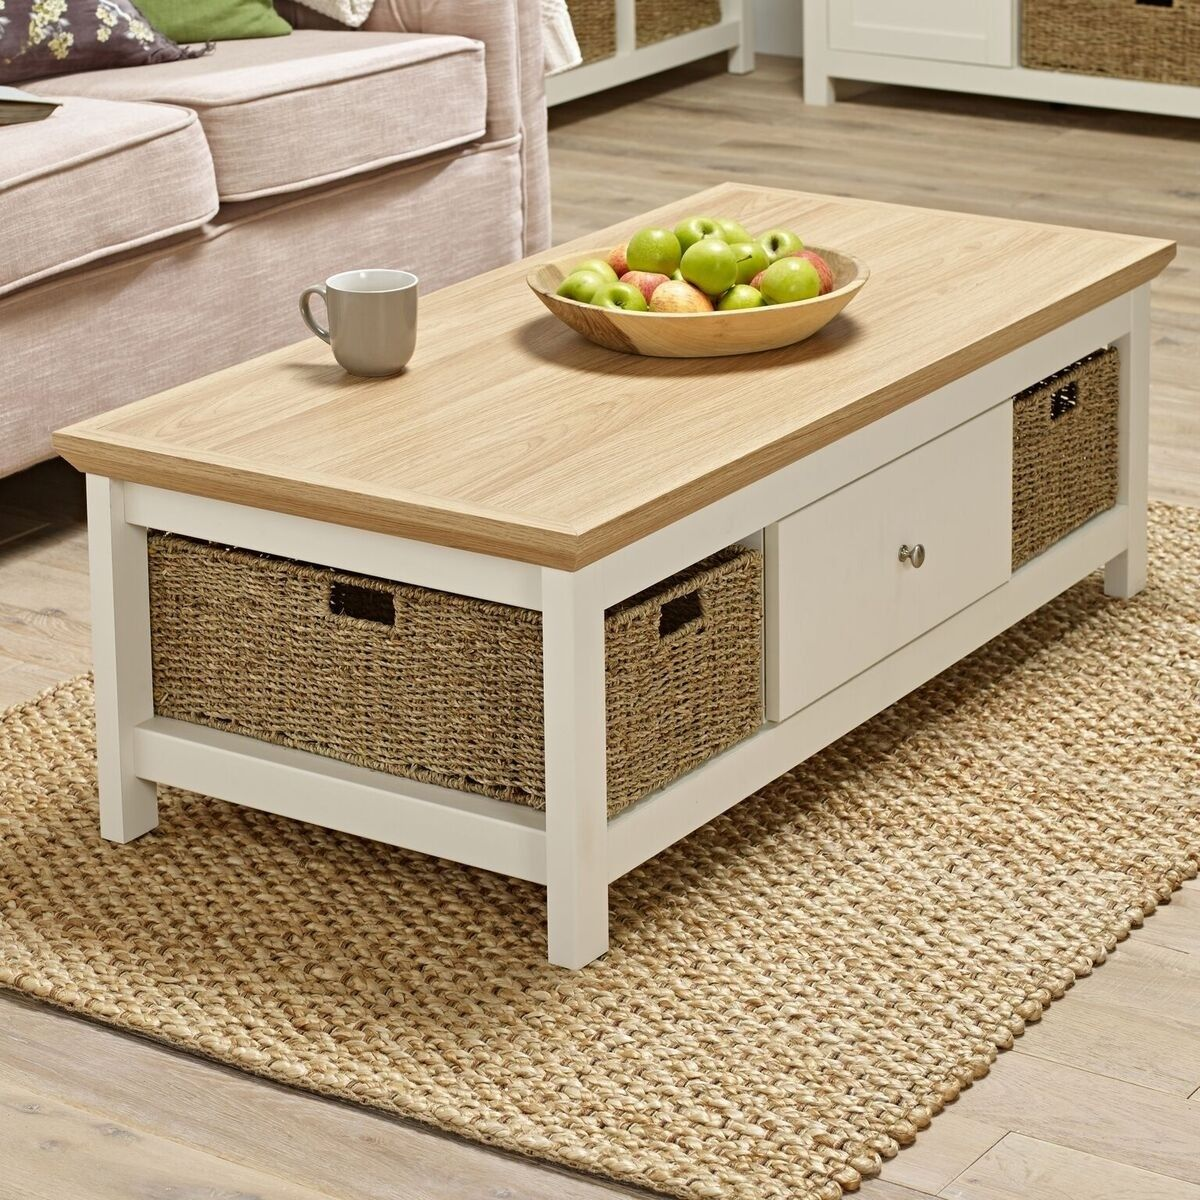 Cream Painted Oak Coffee Table With Single Drawer And Wicker